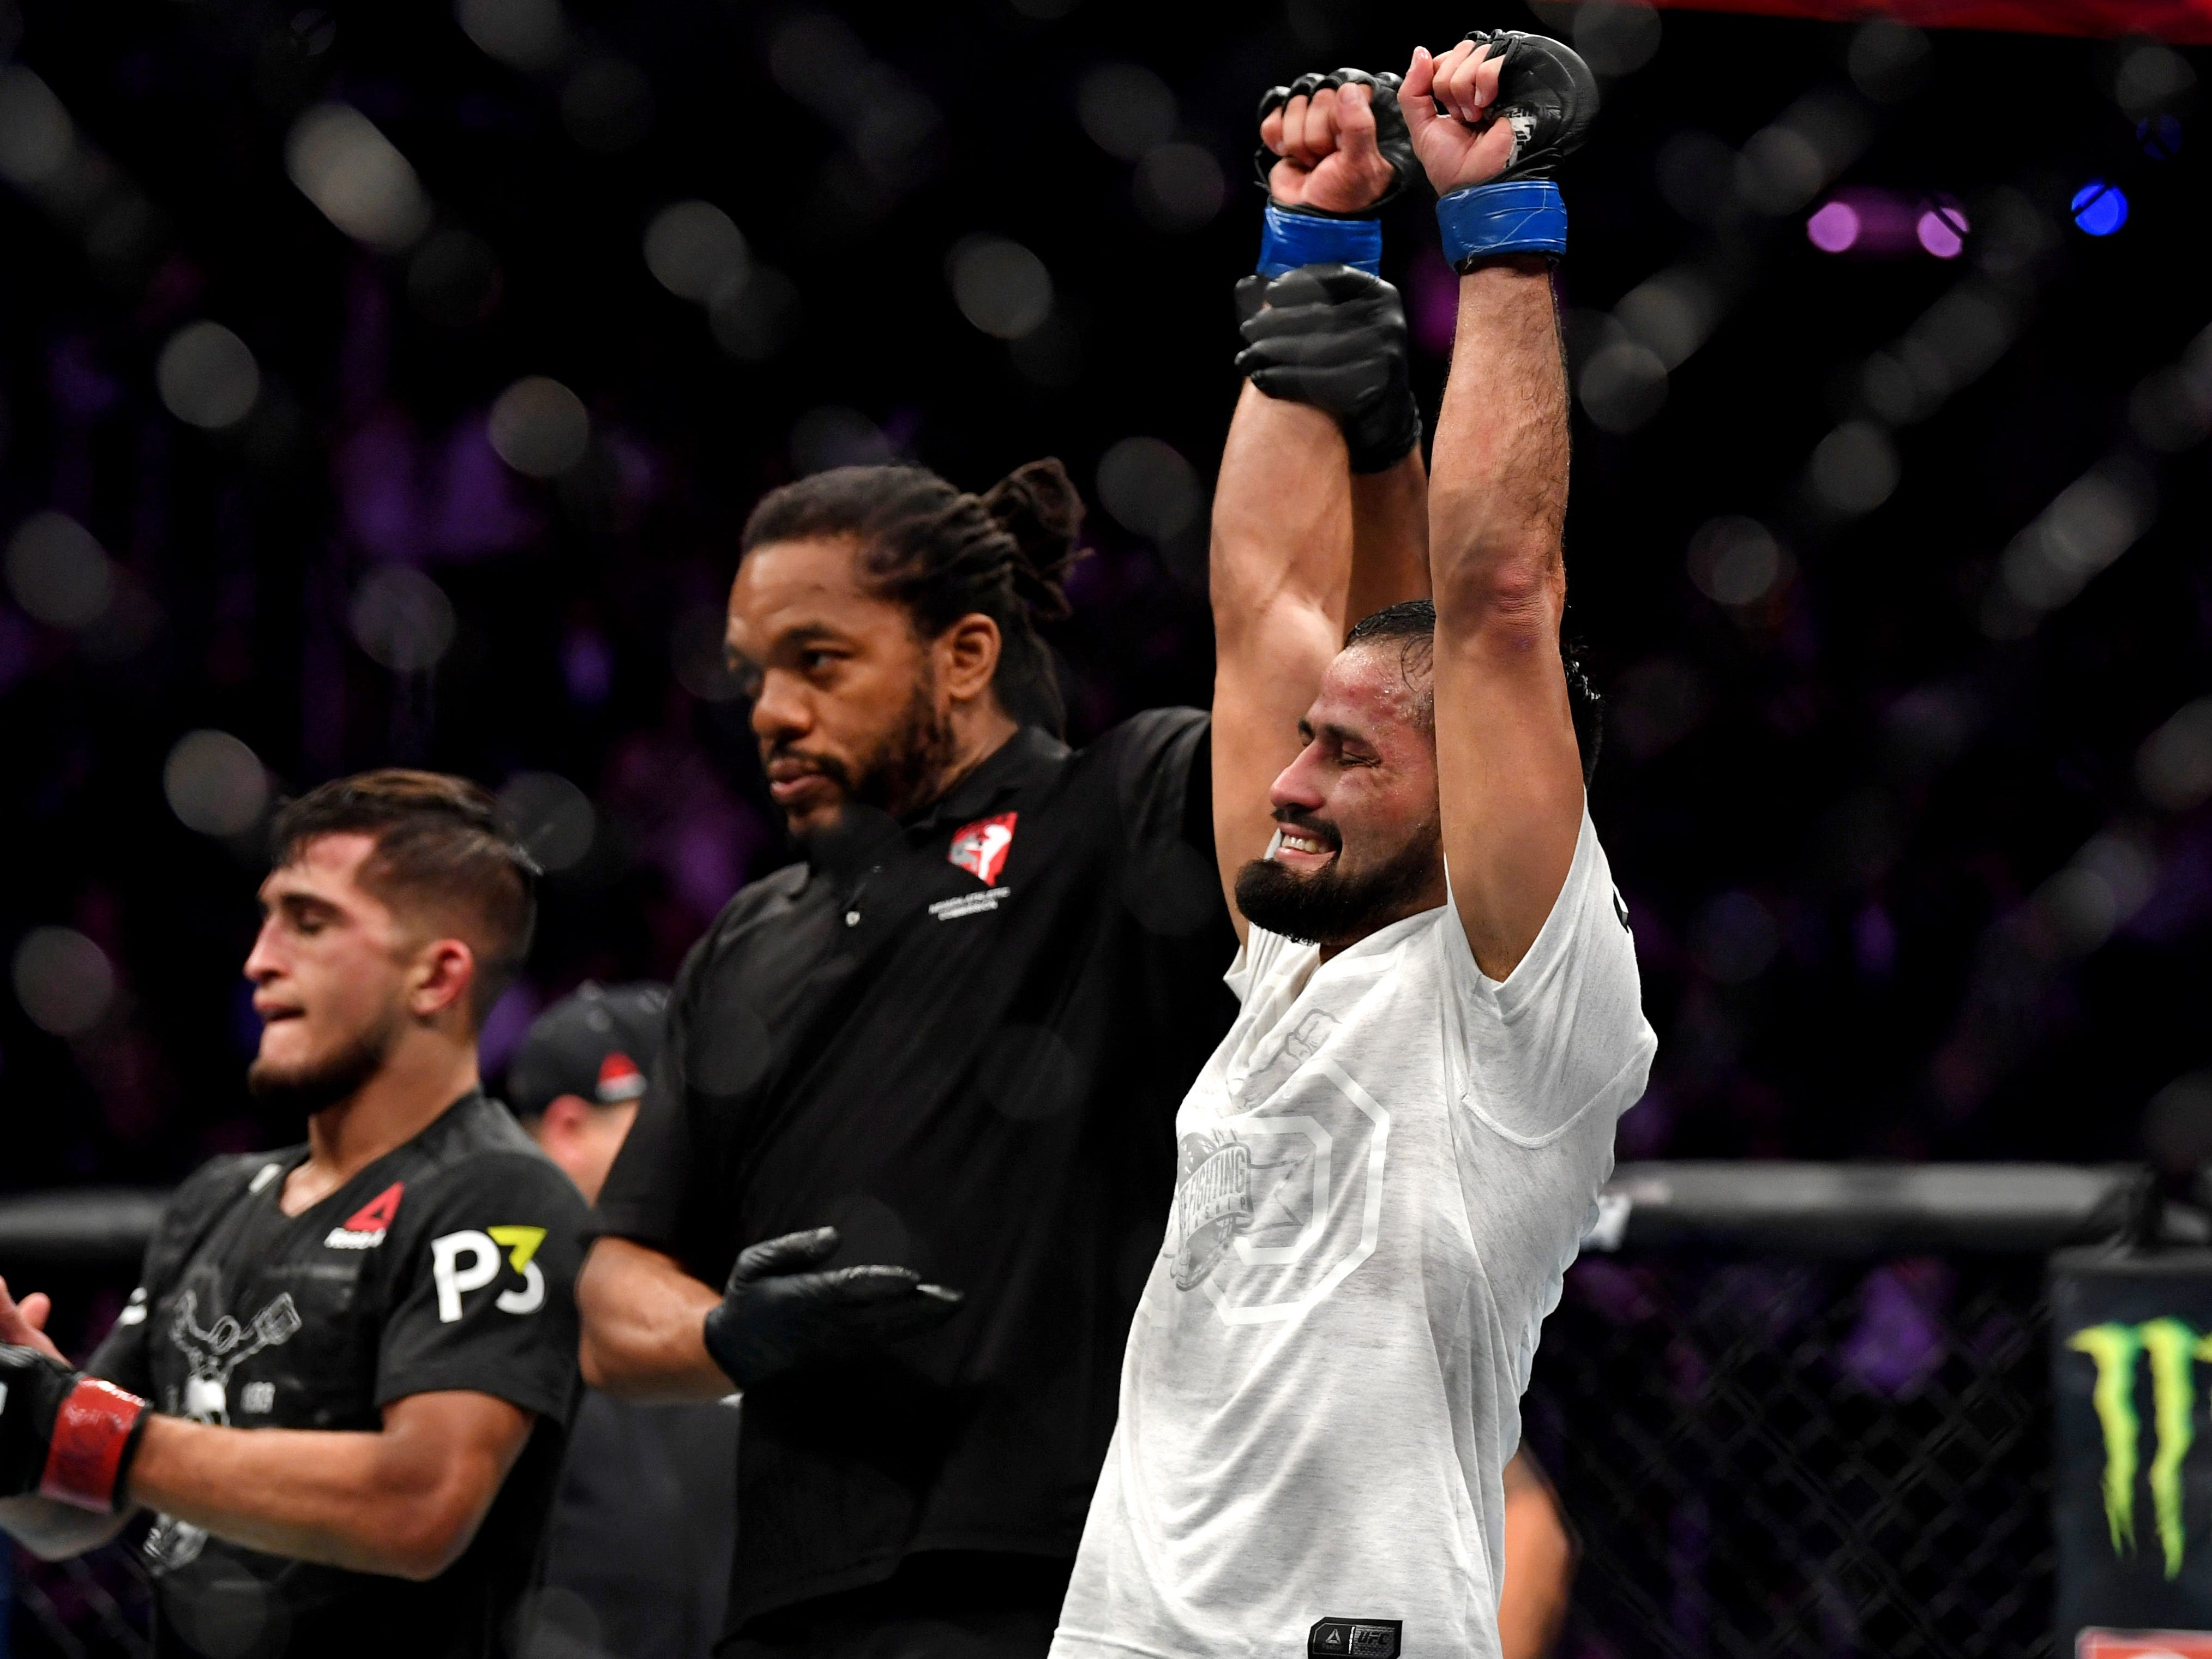 Jussier Formiga celebrates after winning a unanimous decision over Sergio Pettis.